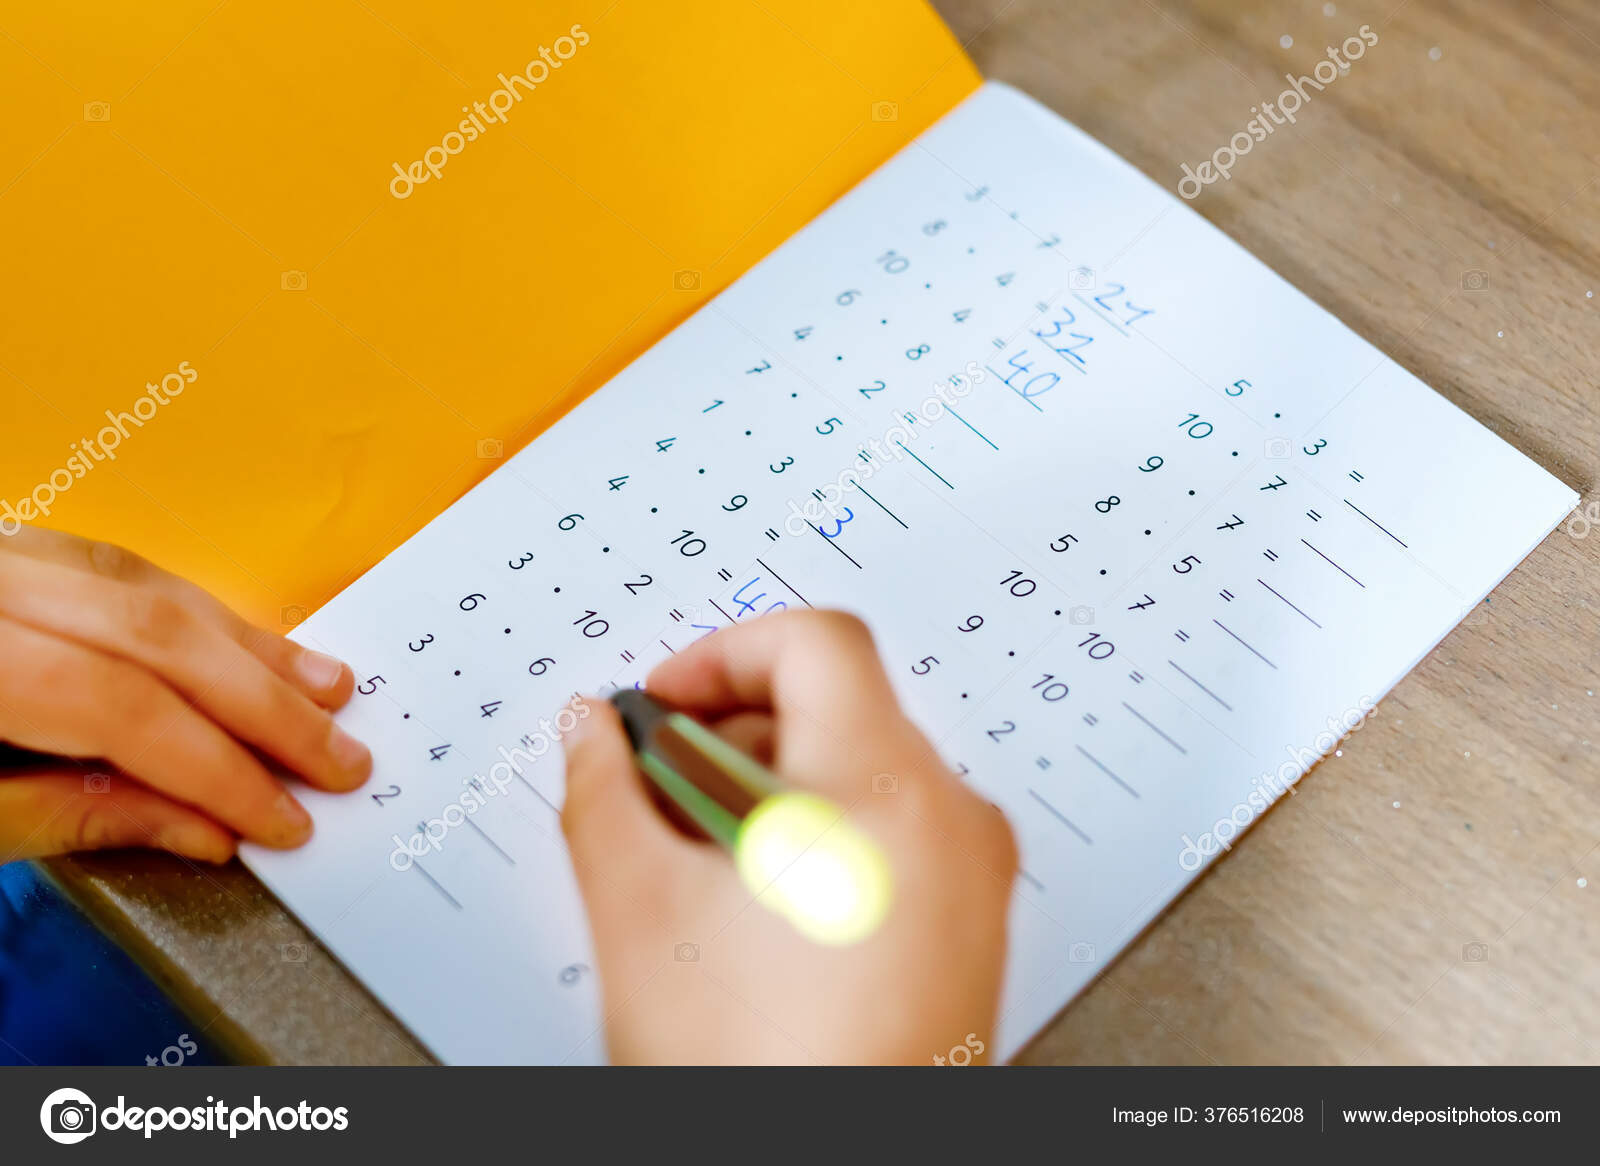 774 Multiplication Table Stock Photos Images Download Multiplication Table Pictures On Depositphotos [ 1166 x 1600 Pixel ]